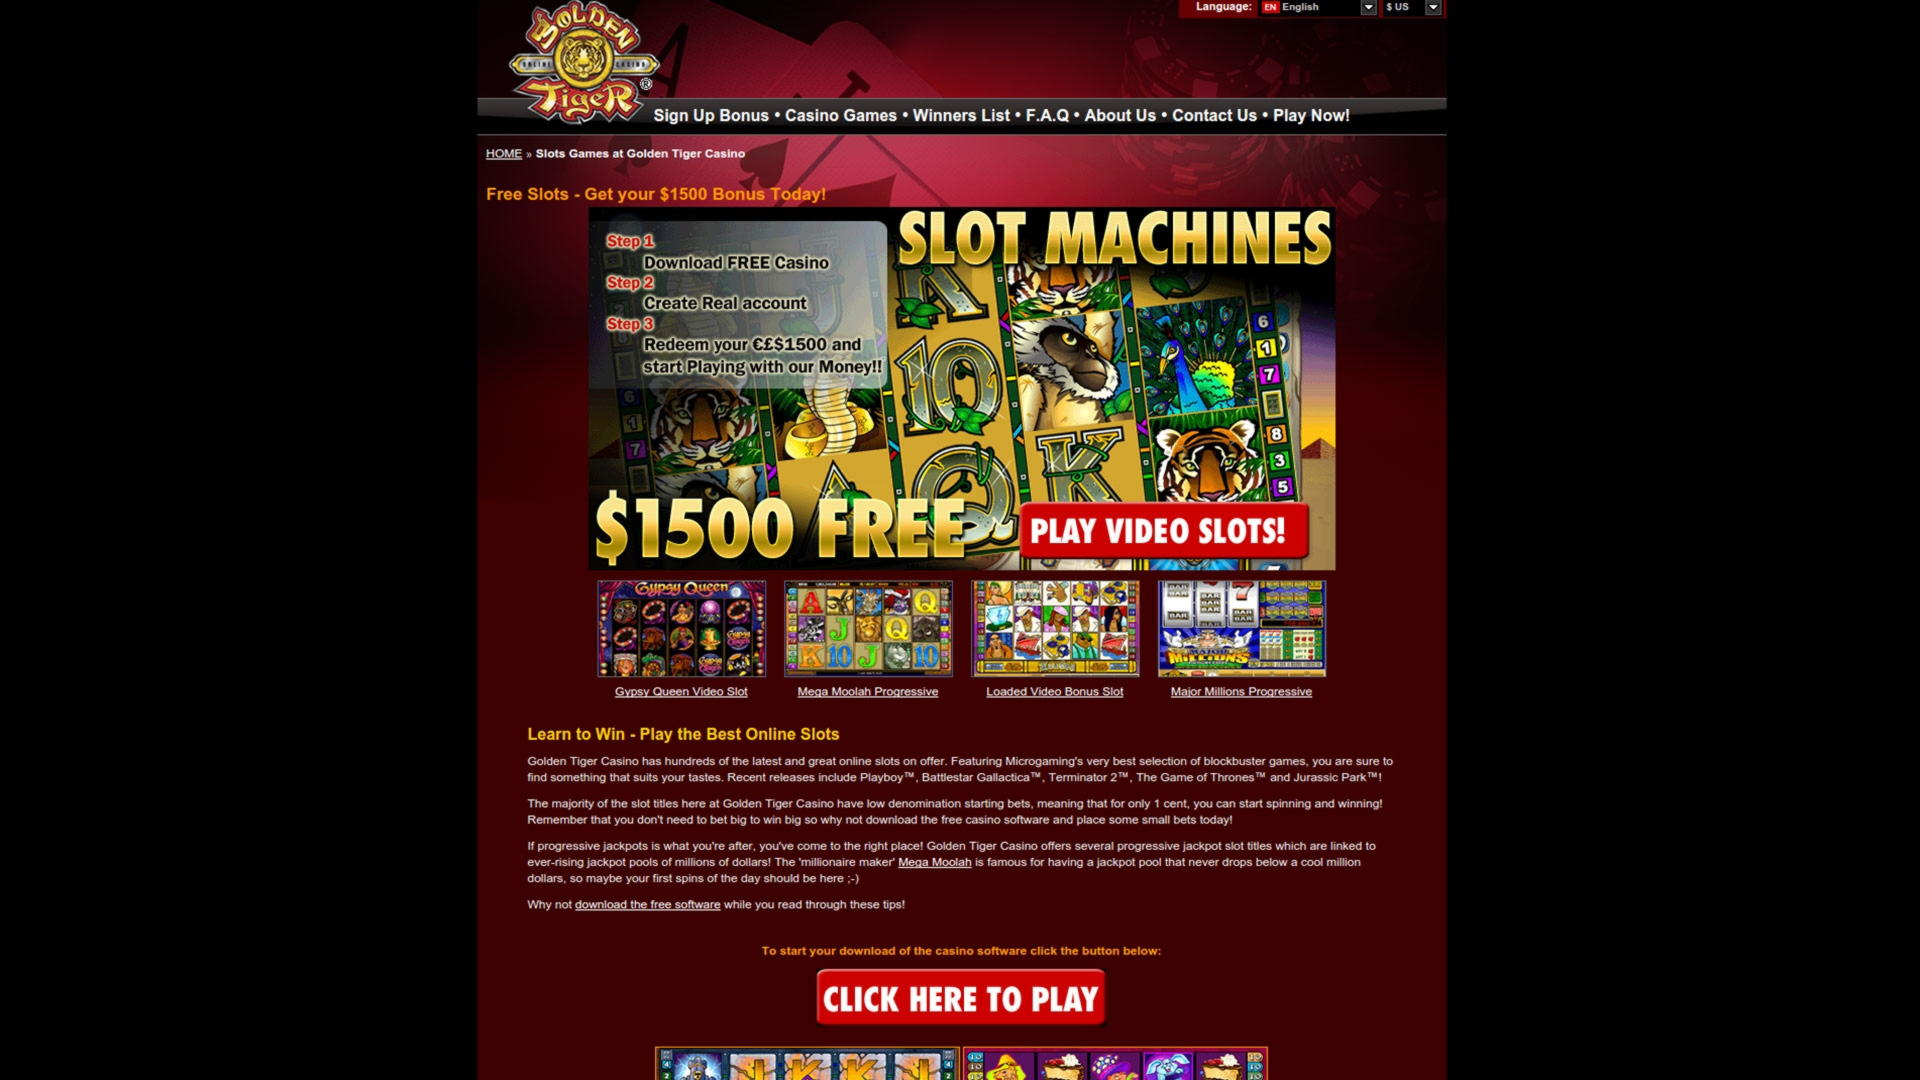 EURO 3310 No deposit bonus casino at Sloto'Cash